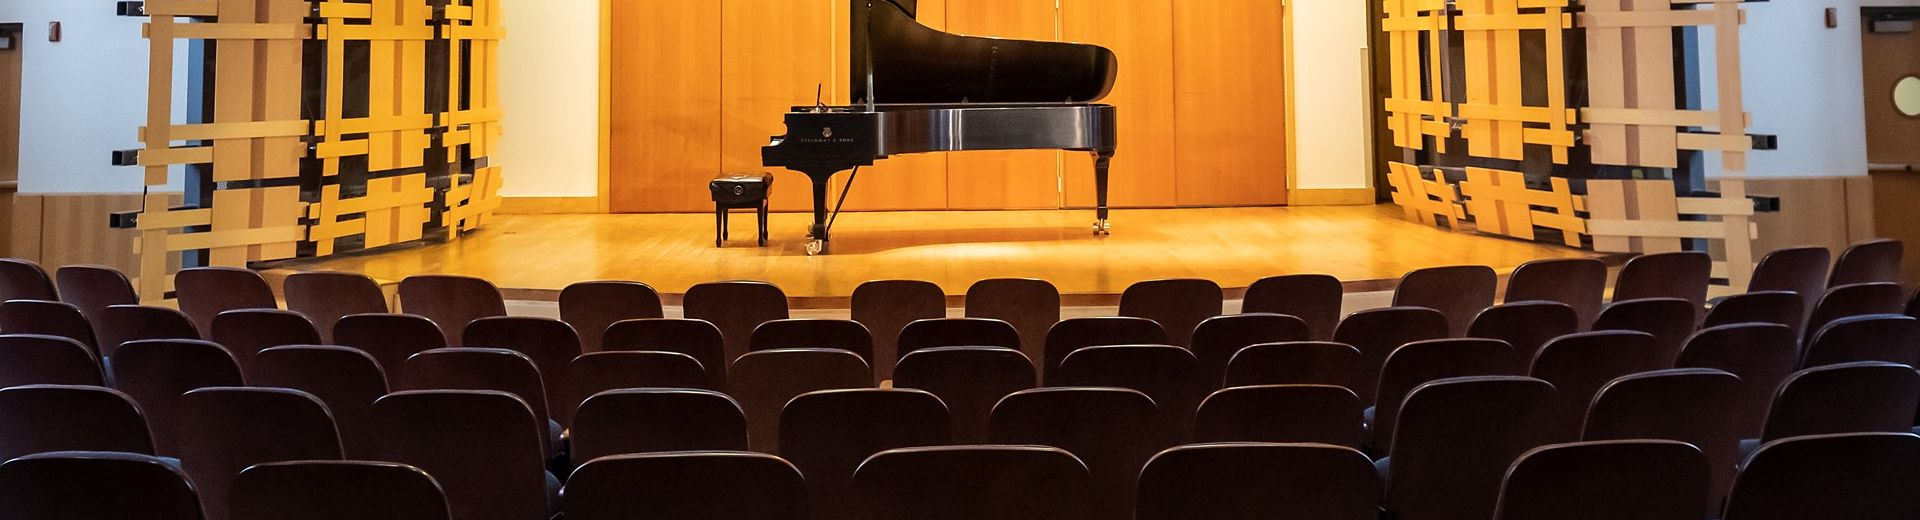 An unattended piano on a stage in an empty auditorium.